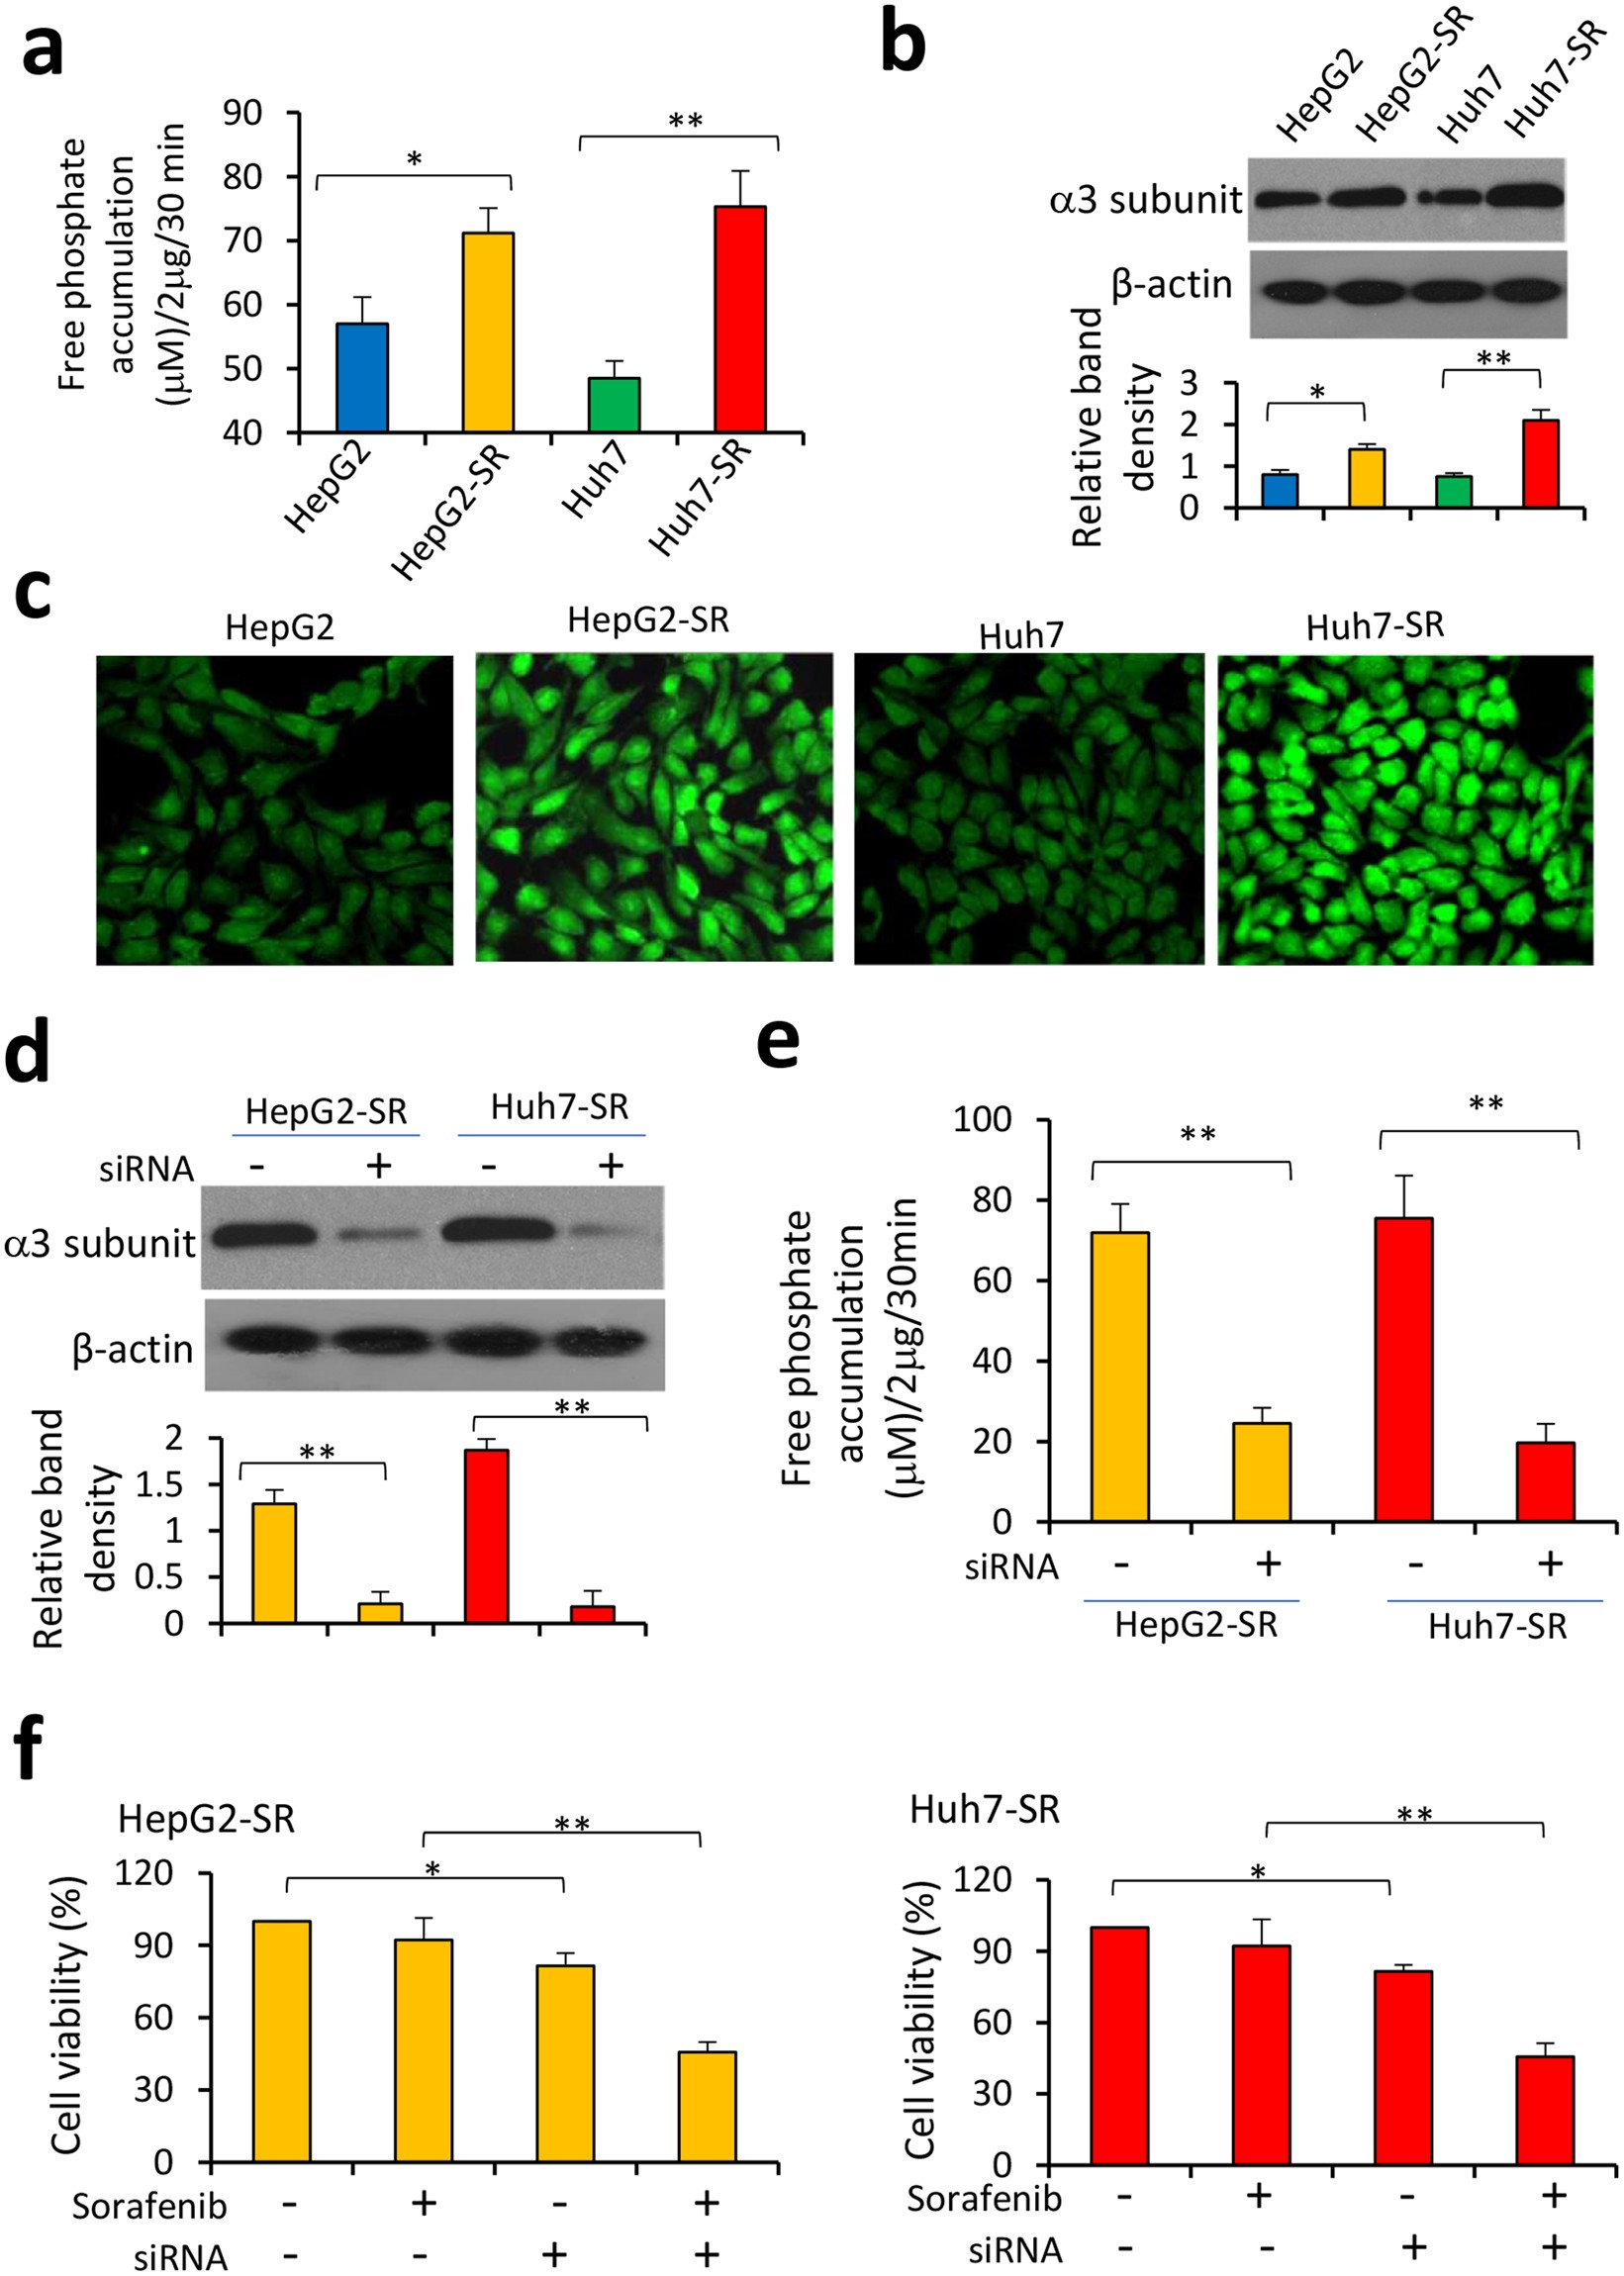 Sodium Orthovanadate Overcomes Sorafenib Resistance Of Efficient Led Driver Works With Single Aa Cell Hepatocellular Carcinoma Cells By Inhibiting Na K Atpase Activity And Hypoxia Inducible